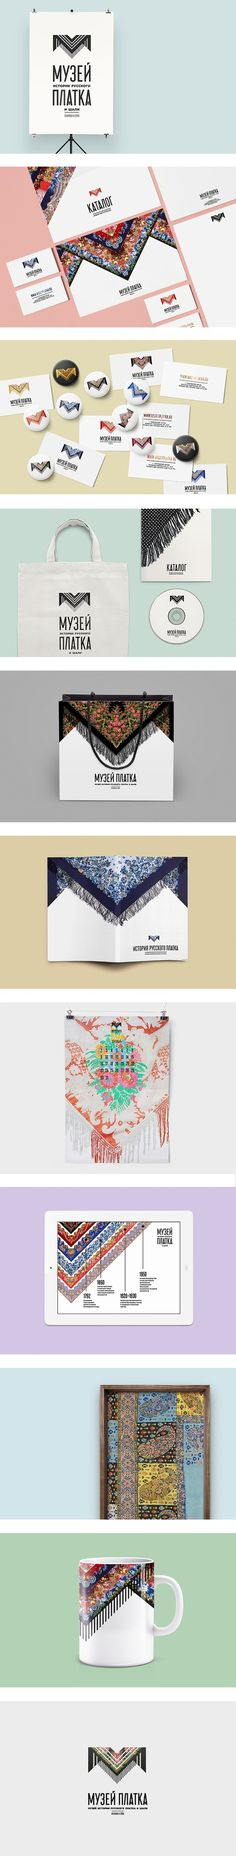 SHAWL MUSEUM by Vova Lifanov, via Behance #branding #patterns